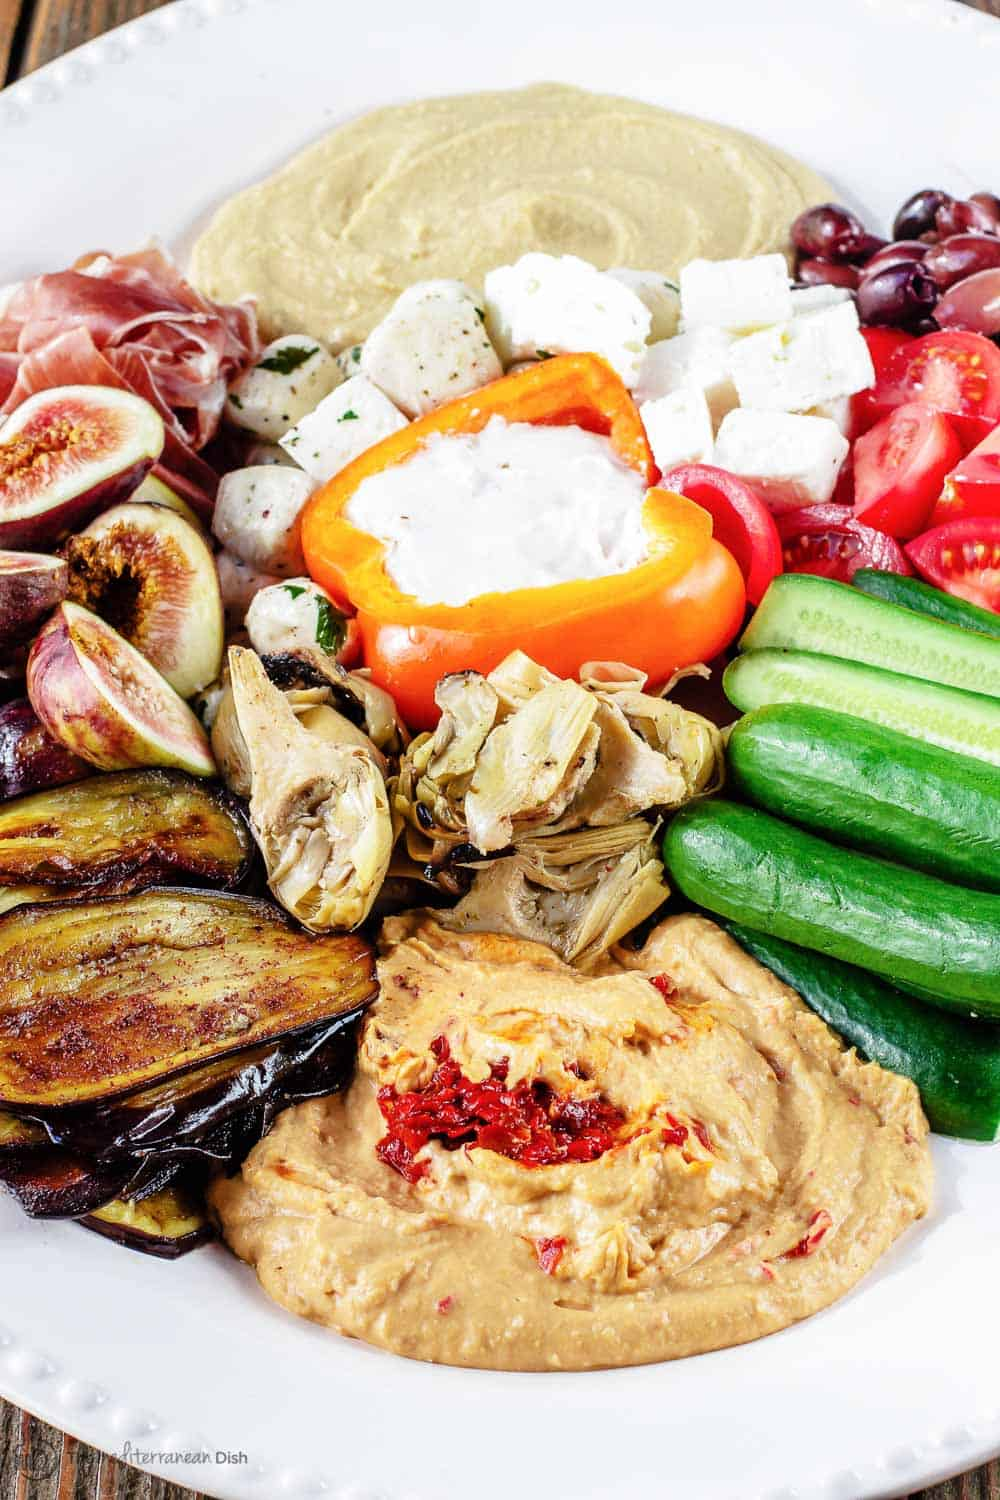 Mezze party platter with hummus